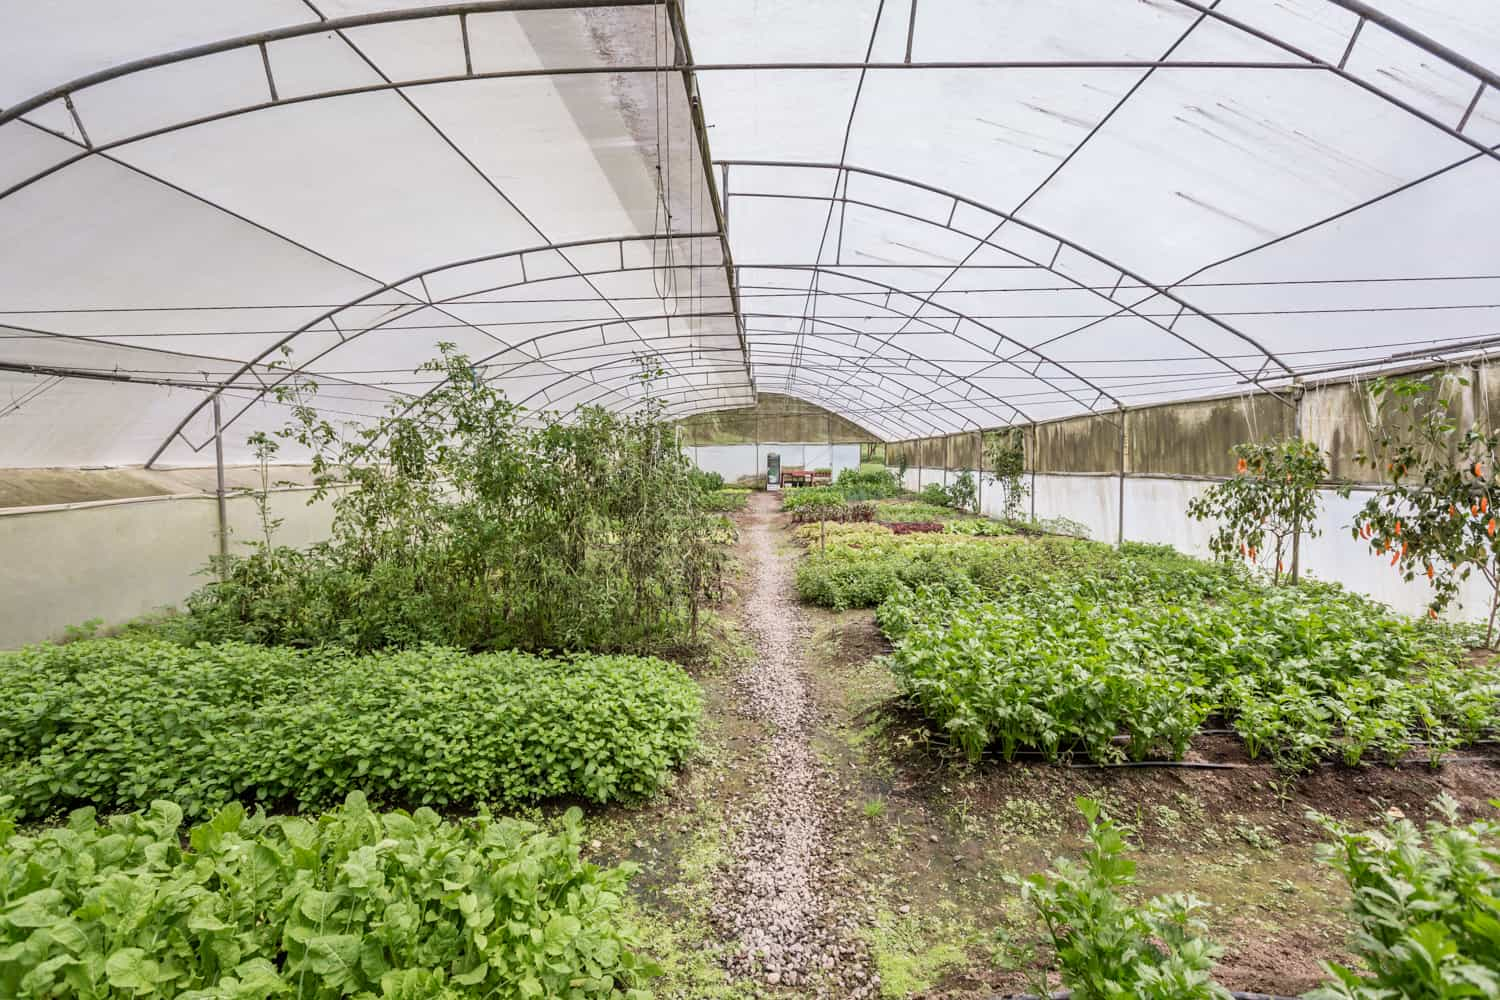 Inside view of herbs and vegetables in greenhouse.